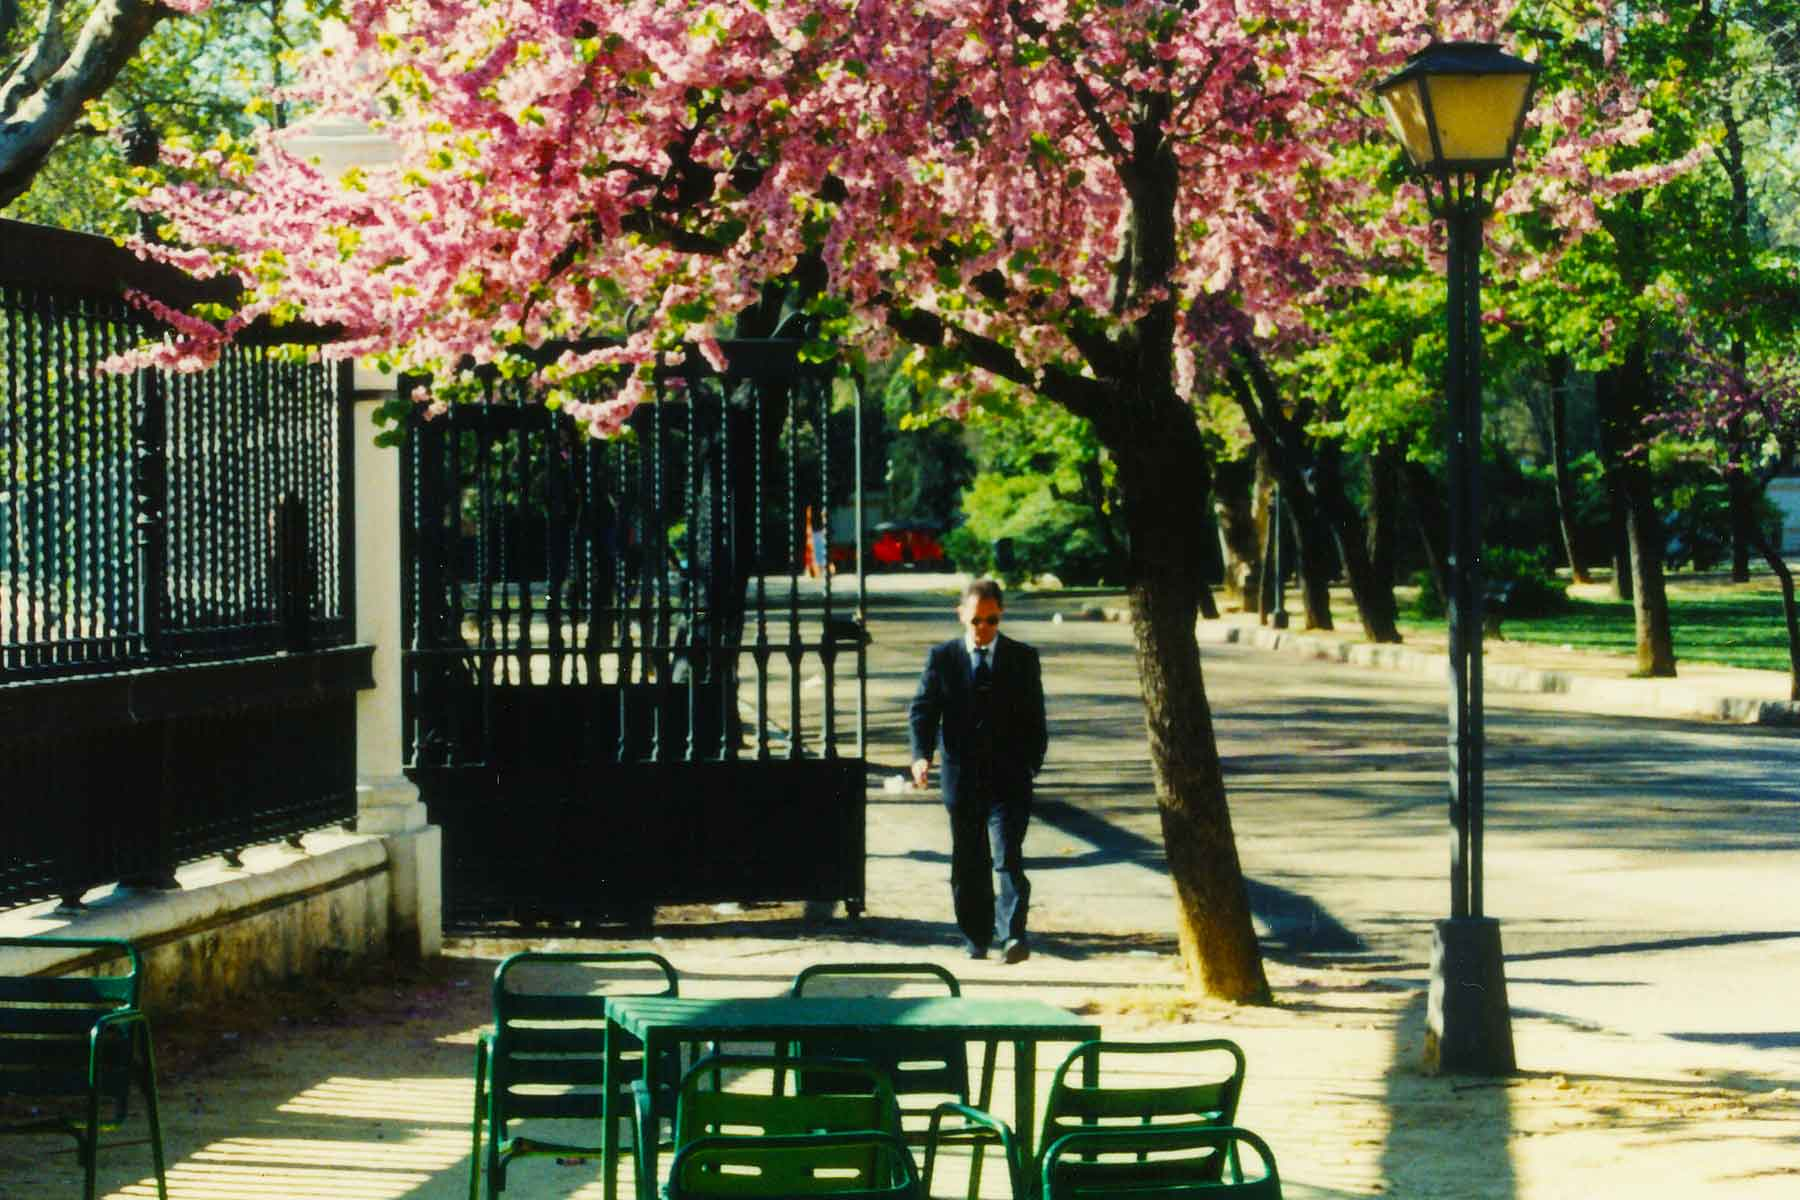 Springtime in Seville - Semester study abroad - Dr Steven Andrew Martin -  Spain Photo Journal and Research